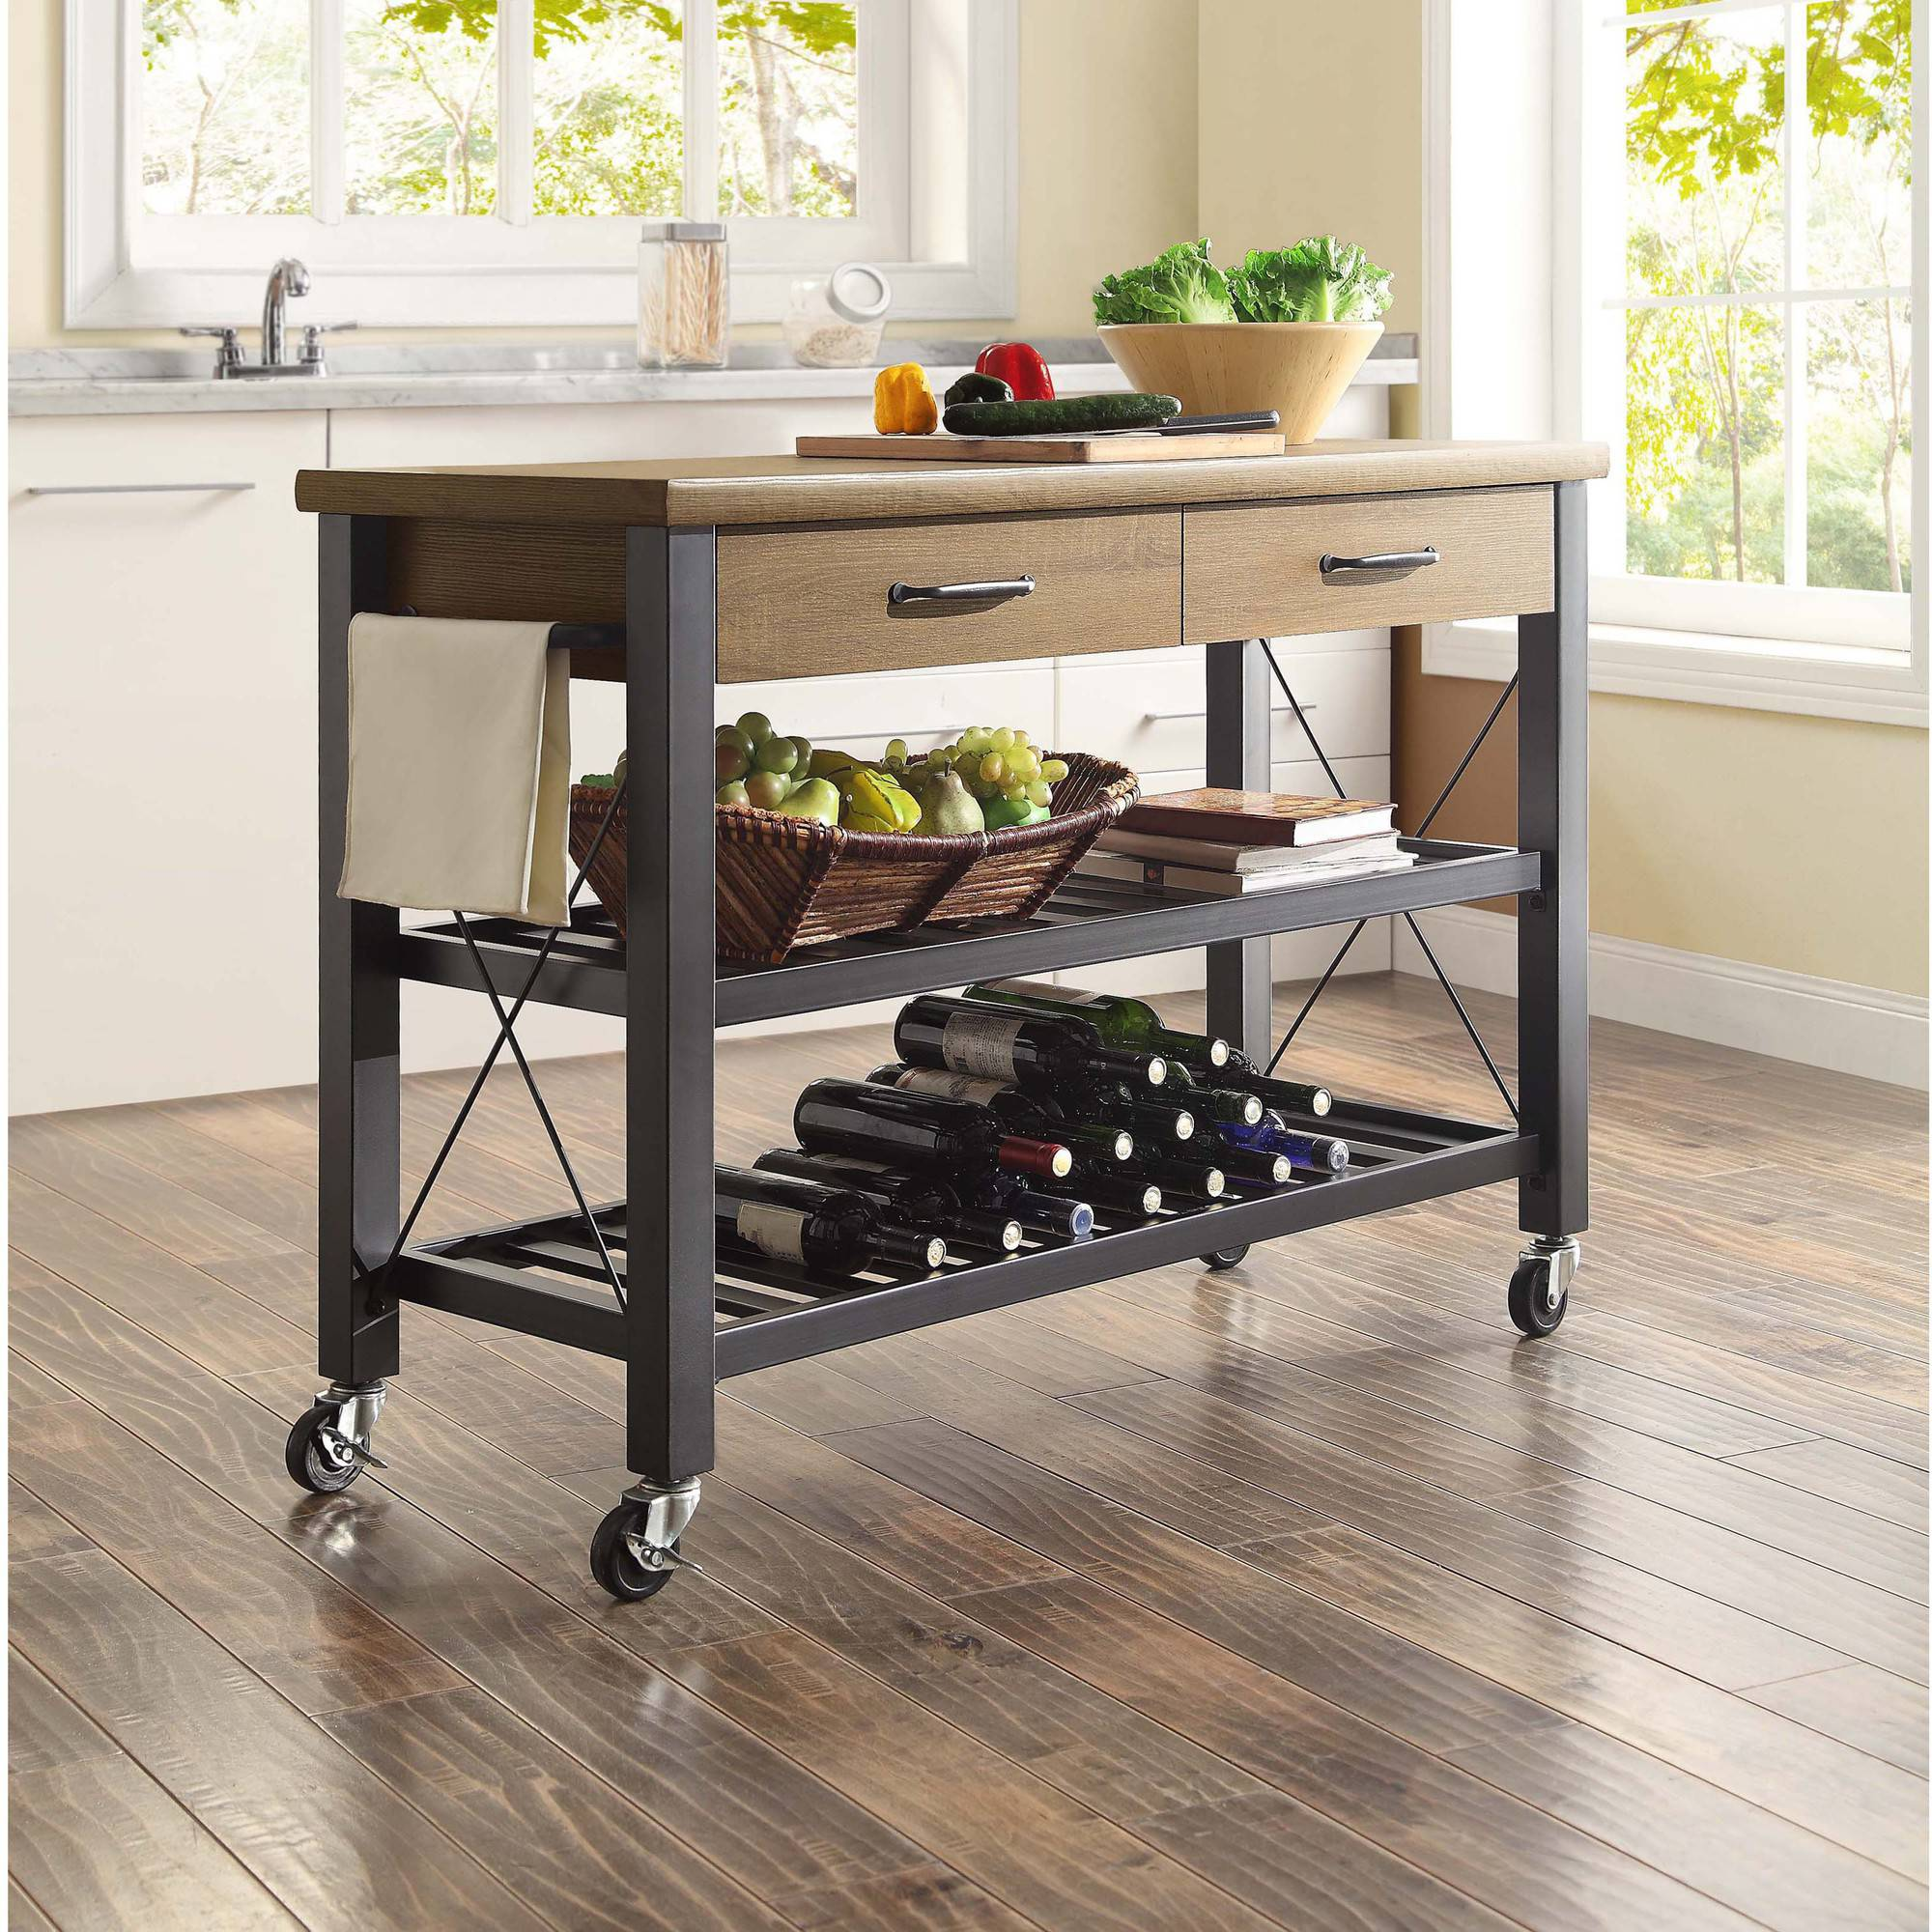 Boraam Drop Leaf Kitchen Cart Stainless Steel Walmart